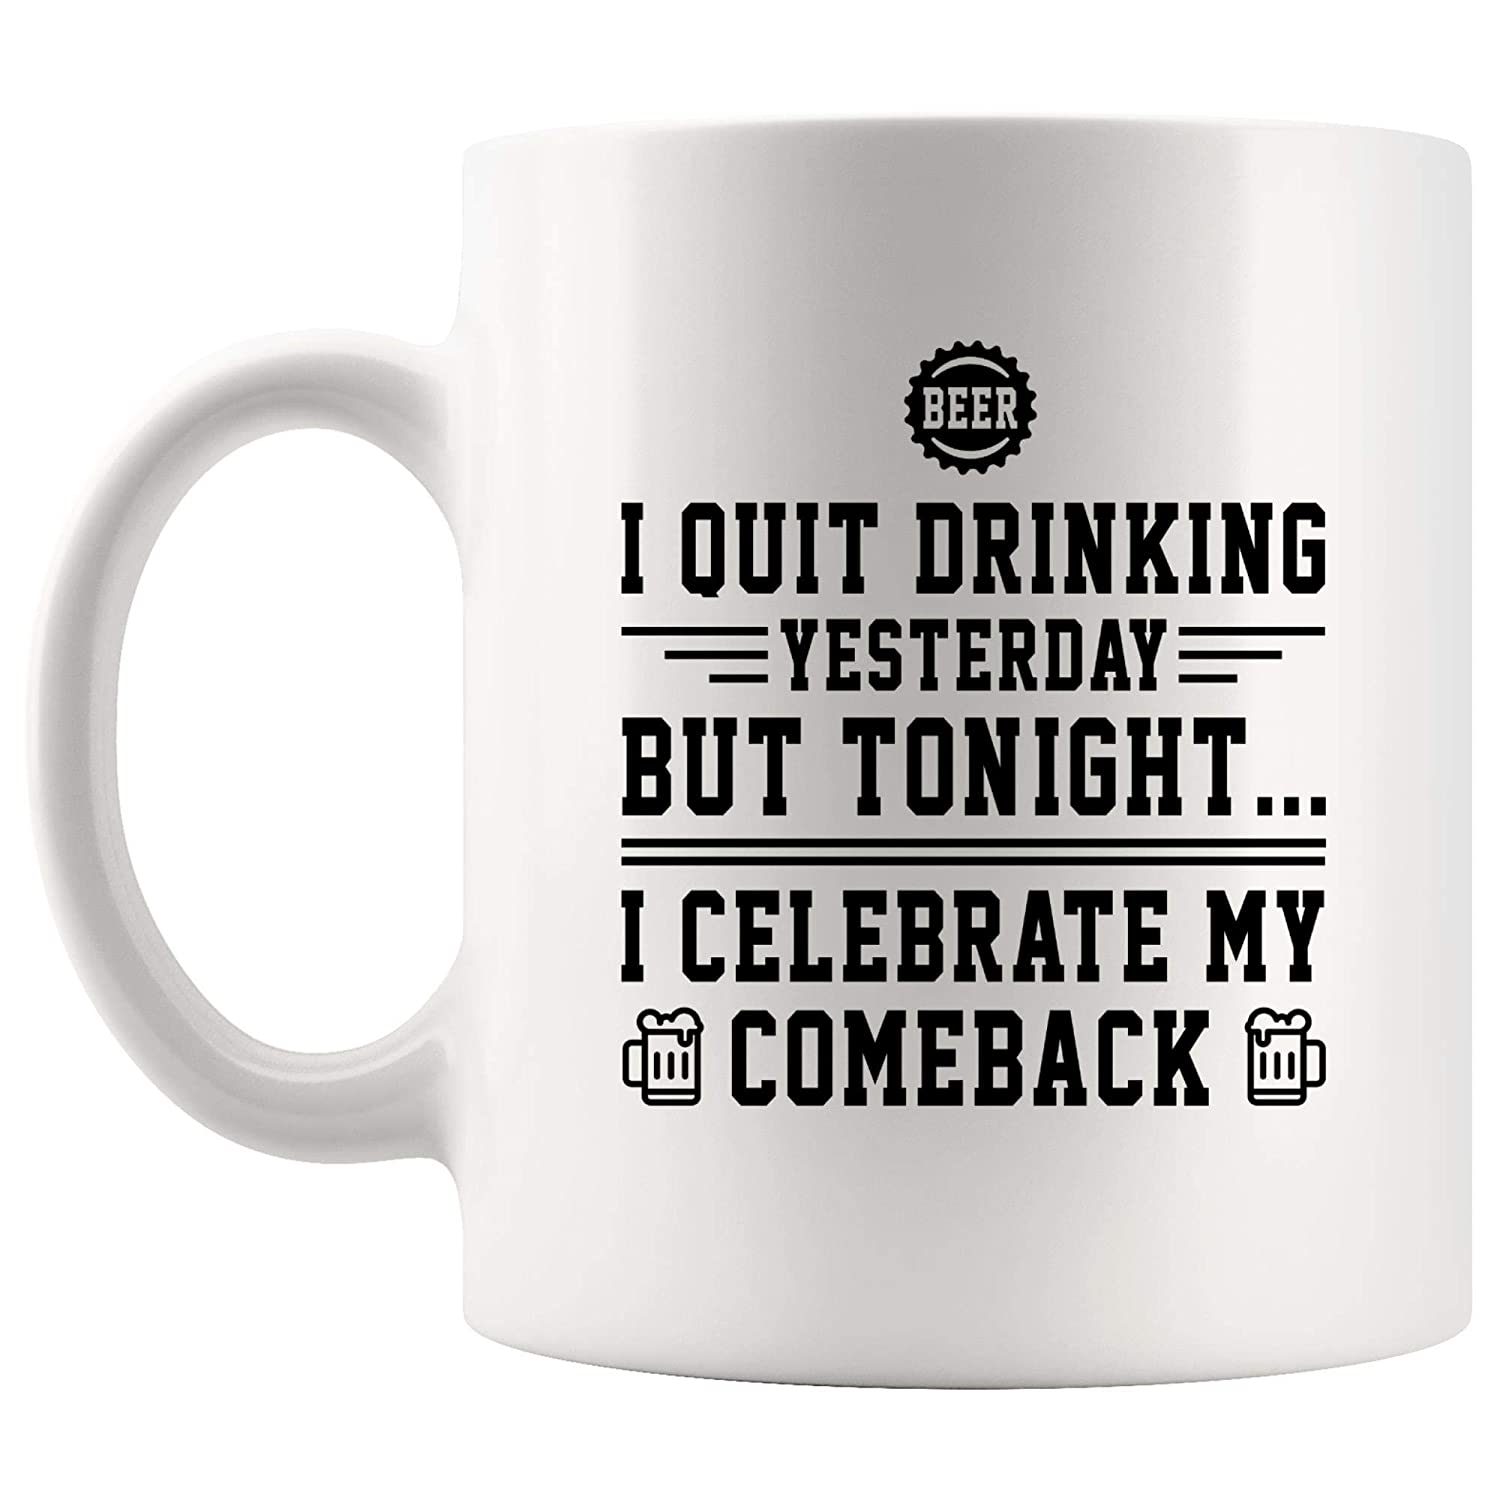 Funny Coffee Mug Beer Cup - Quit Drinking Yesterday Tonight Celebrate Comeback Joke Gag Sarcasm Tea Mugs Sarcastic Quotes Tea Mugs Meme Humor Men Women Kids Gift Fun Sayings Humorous Gifts